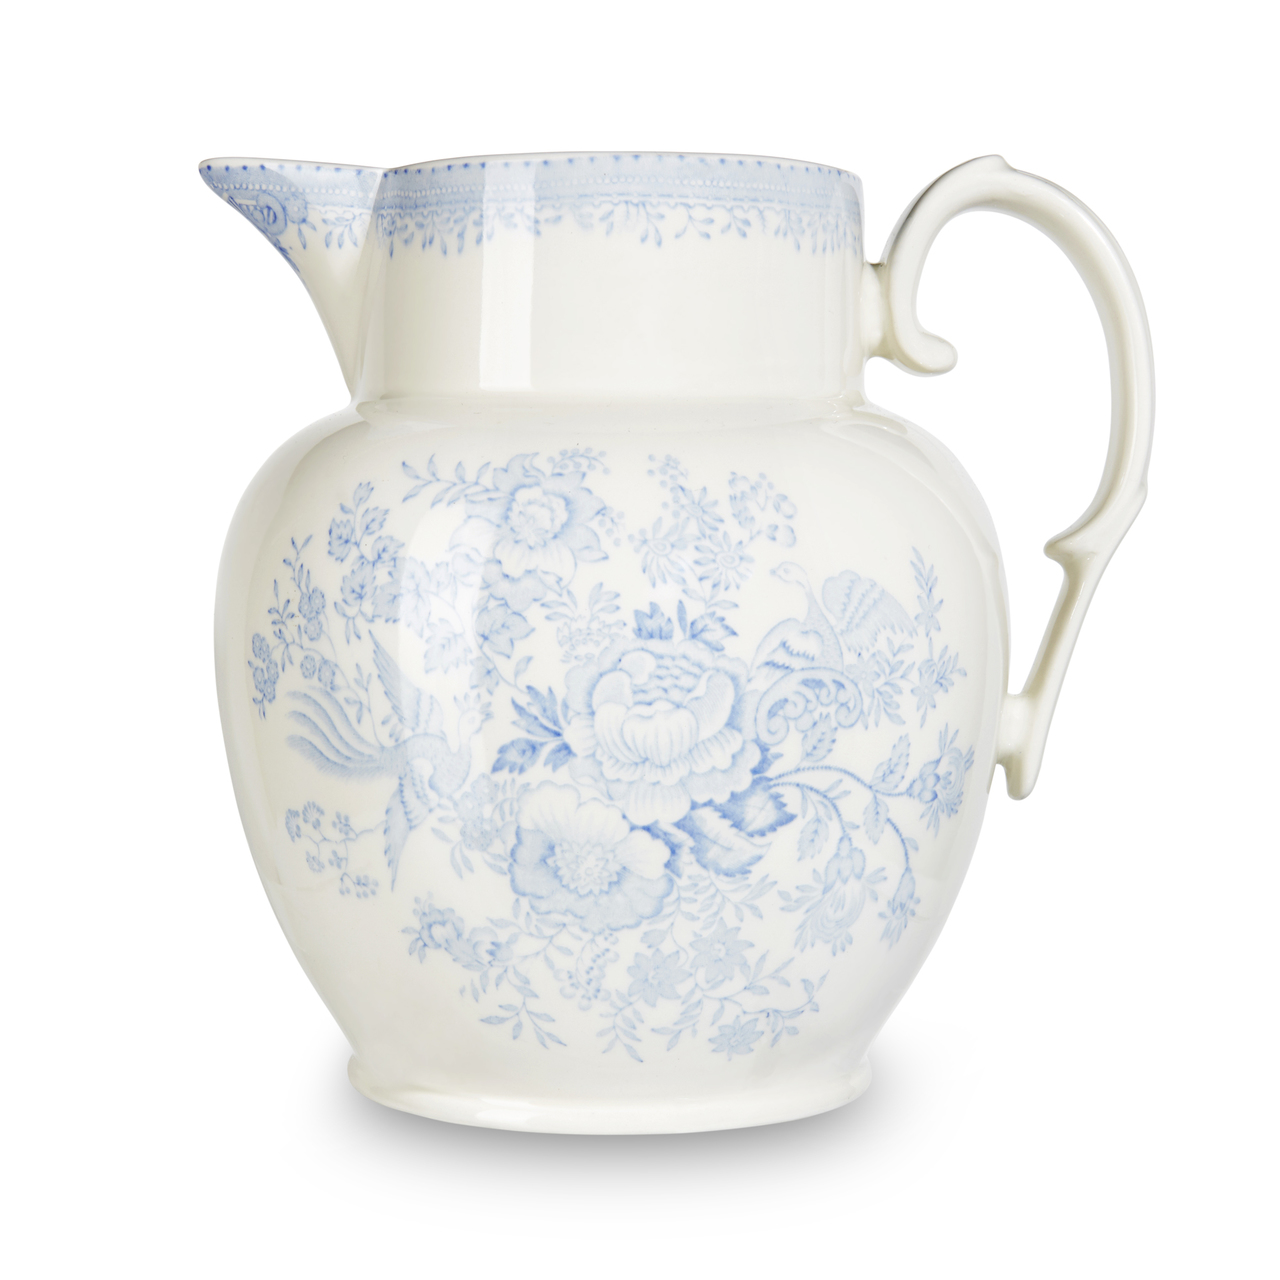 Burleigh Blue Asiatic Pheasants | Beautiful china to adorn your tablescapes and add to your Sasha Nicholas wedding & gift registry